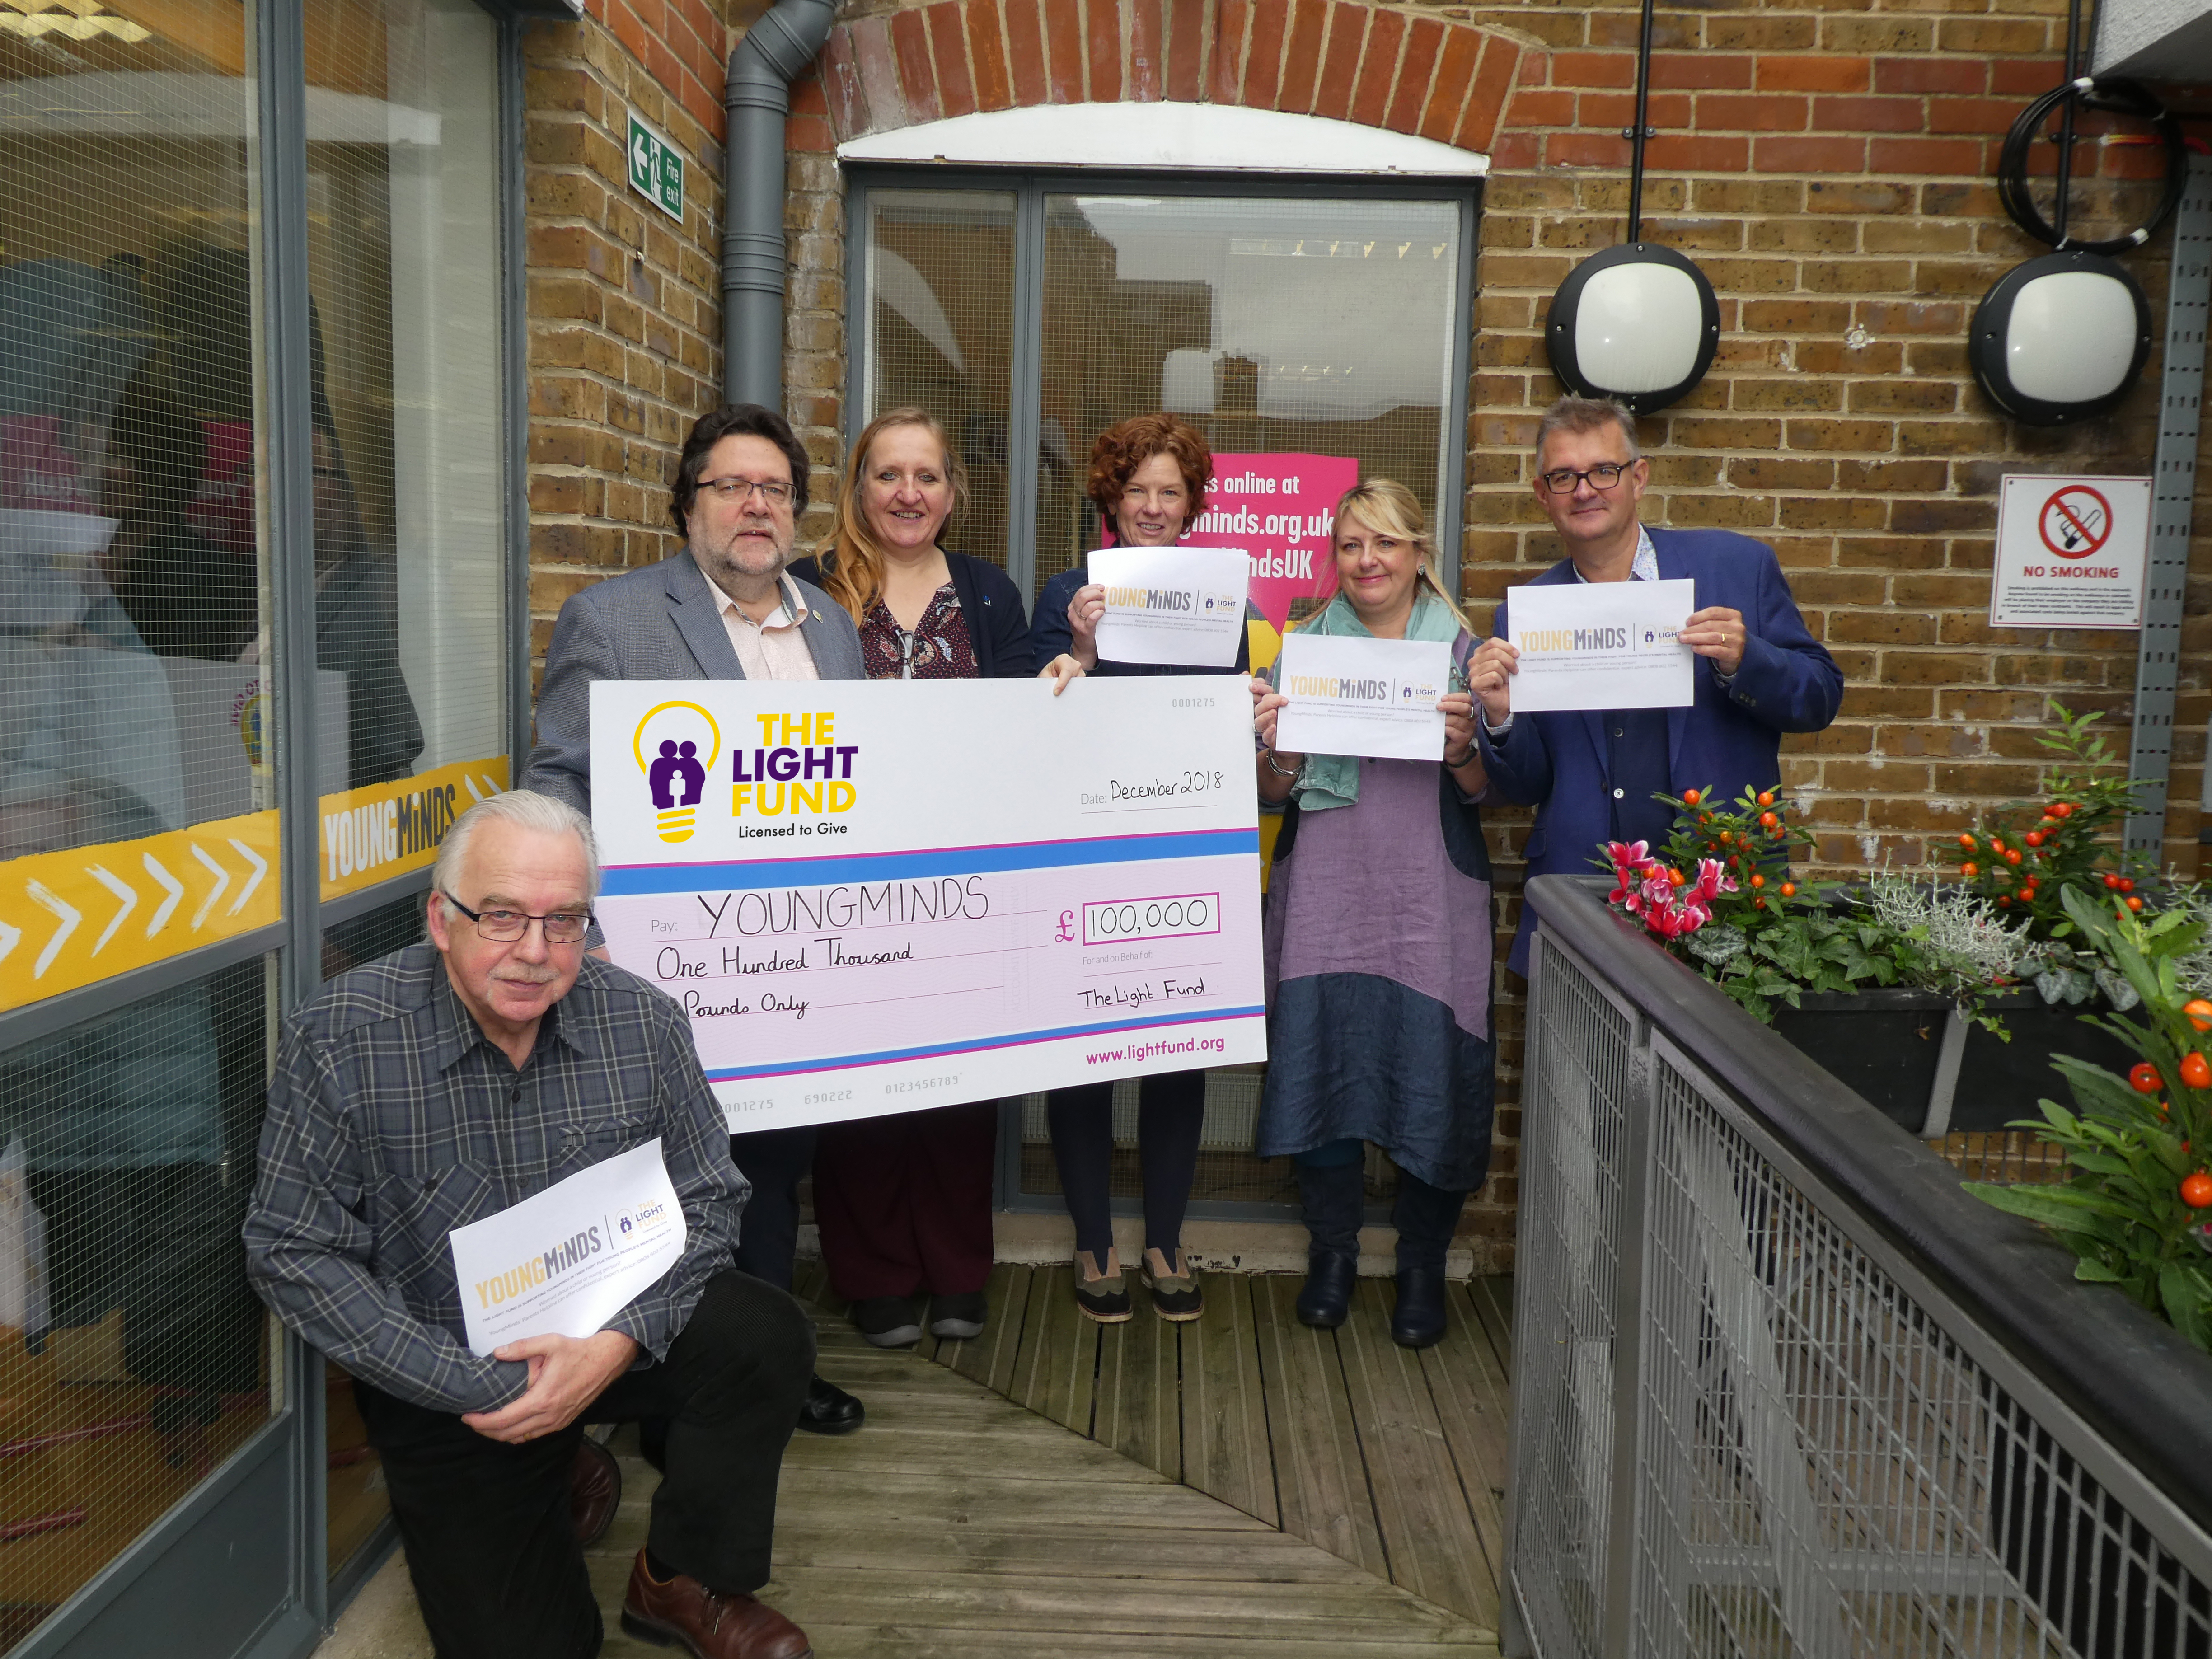 Above: Among the many projects The Light Fund has funded over the years was a two year commitment to Young Minds for its helpline. The Light Fund's chairman Trevor Jones (second left) went with several members of the committee to present the cheque. These included Kelvyn Gardner (front), a long serving Light Fund committee member who sadly died a few weeks ago. (https://www.pgbuzz.net/tributes-flood-in-for-licensing-industry-legend-kelvyn-gardner/)